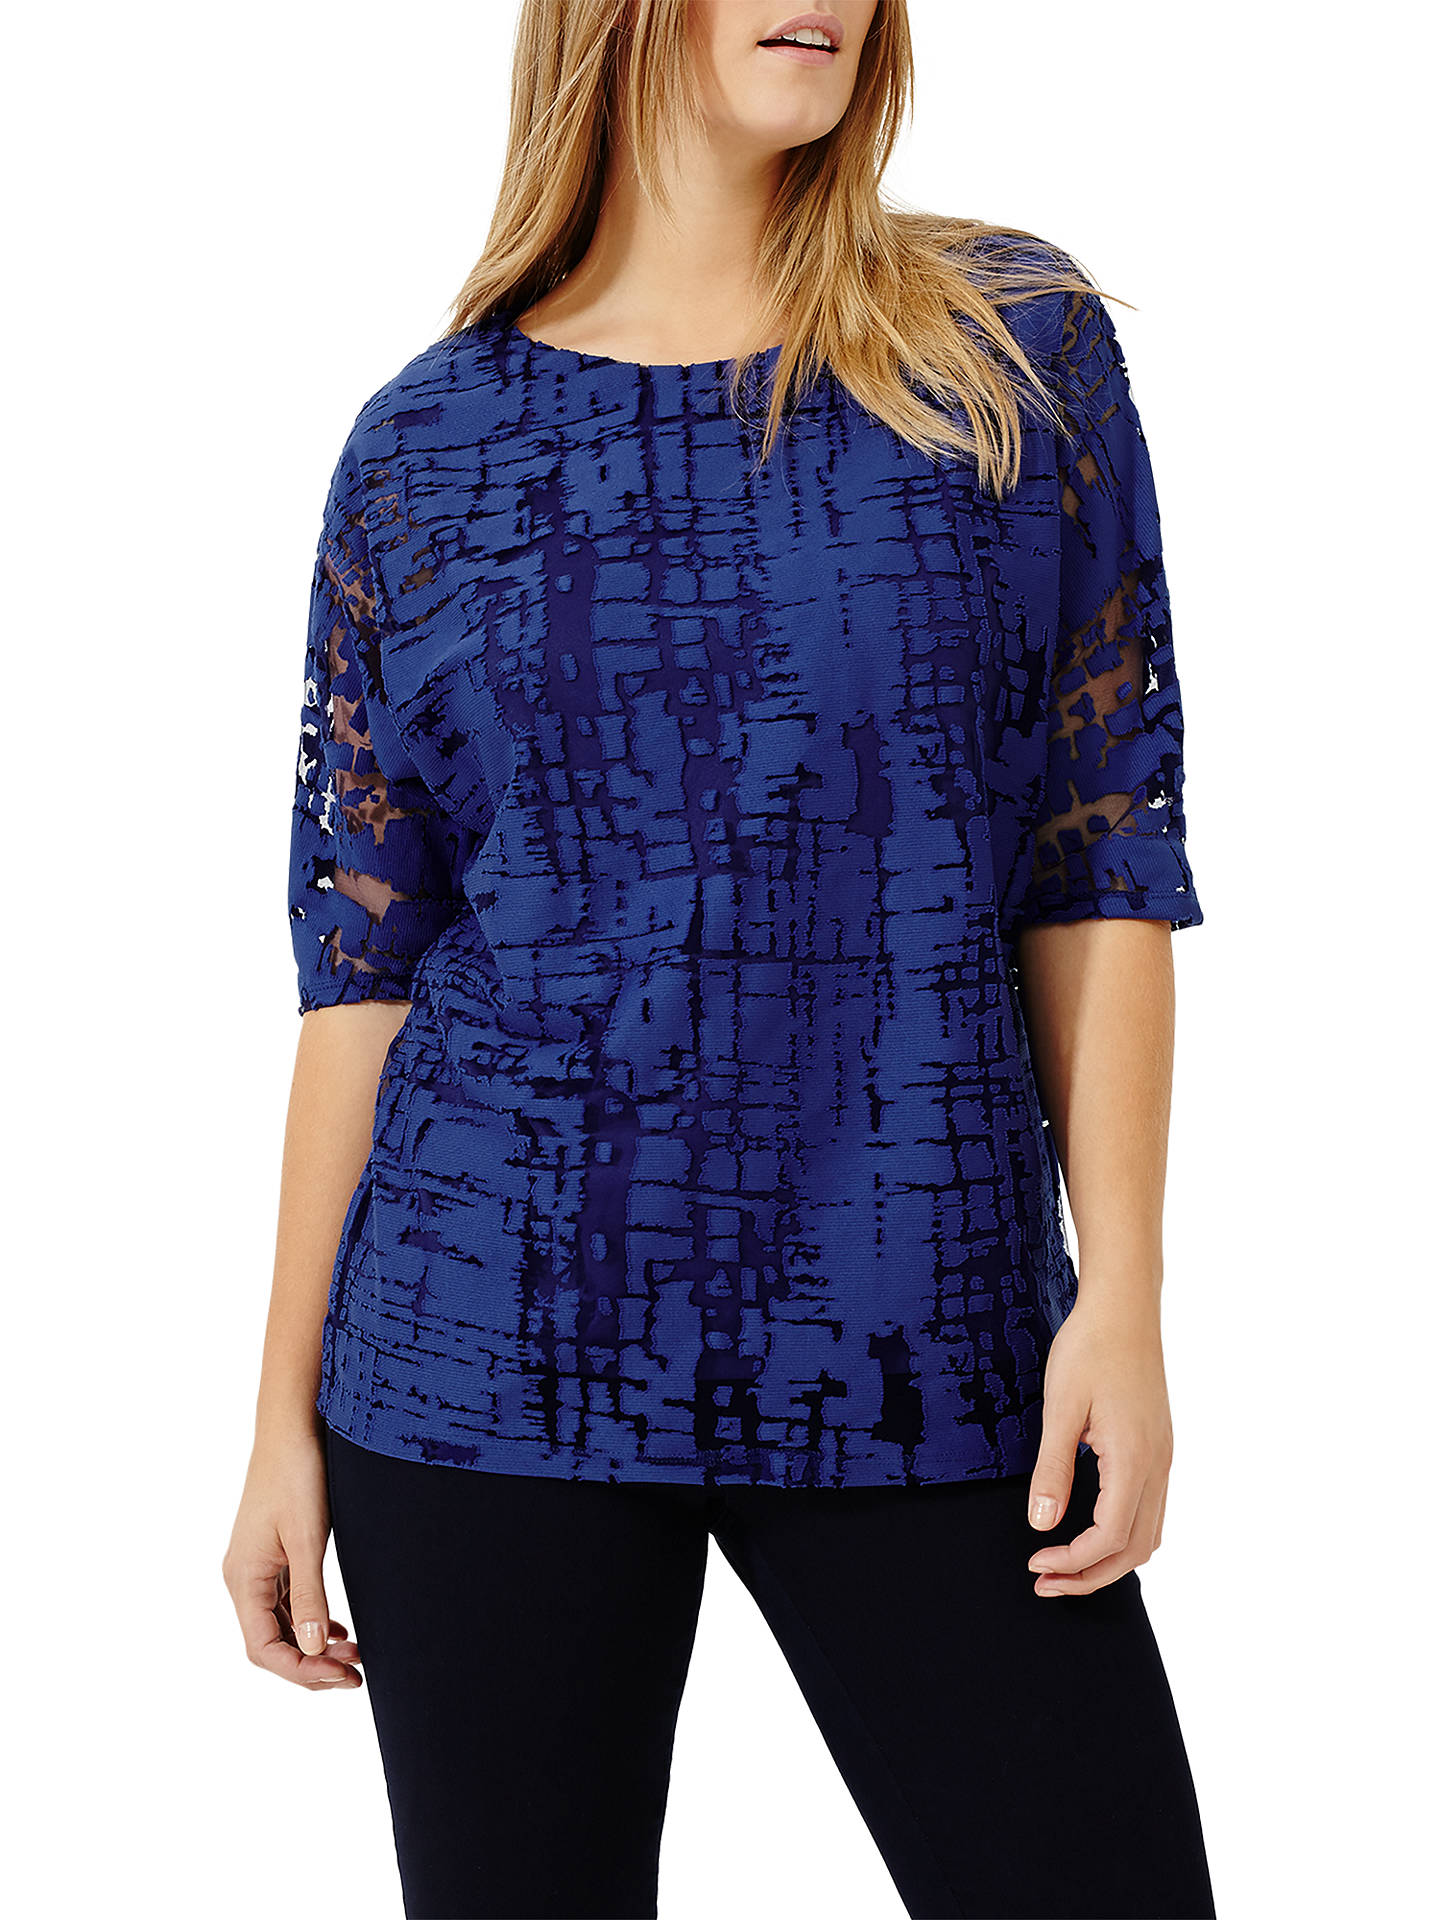 BuyStudio 8 Lucy Burnout Top, Cobalt, 12 Online at johnlewis.com